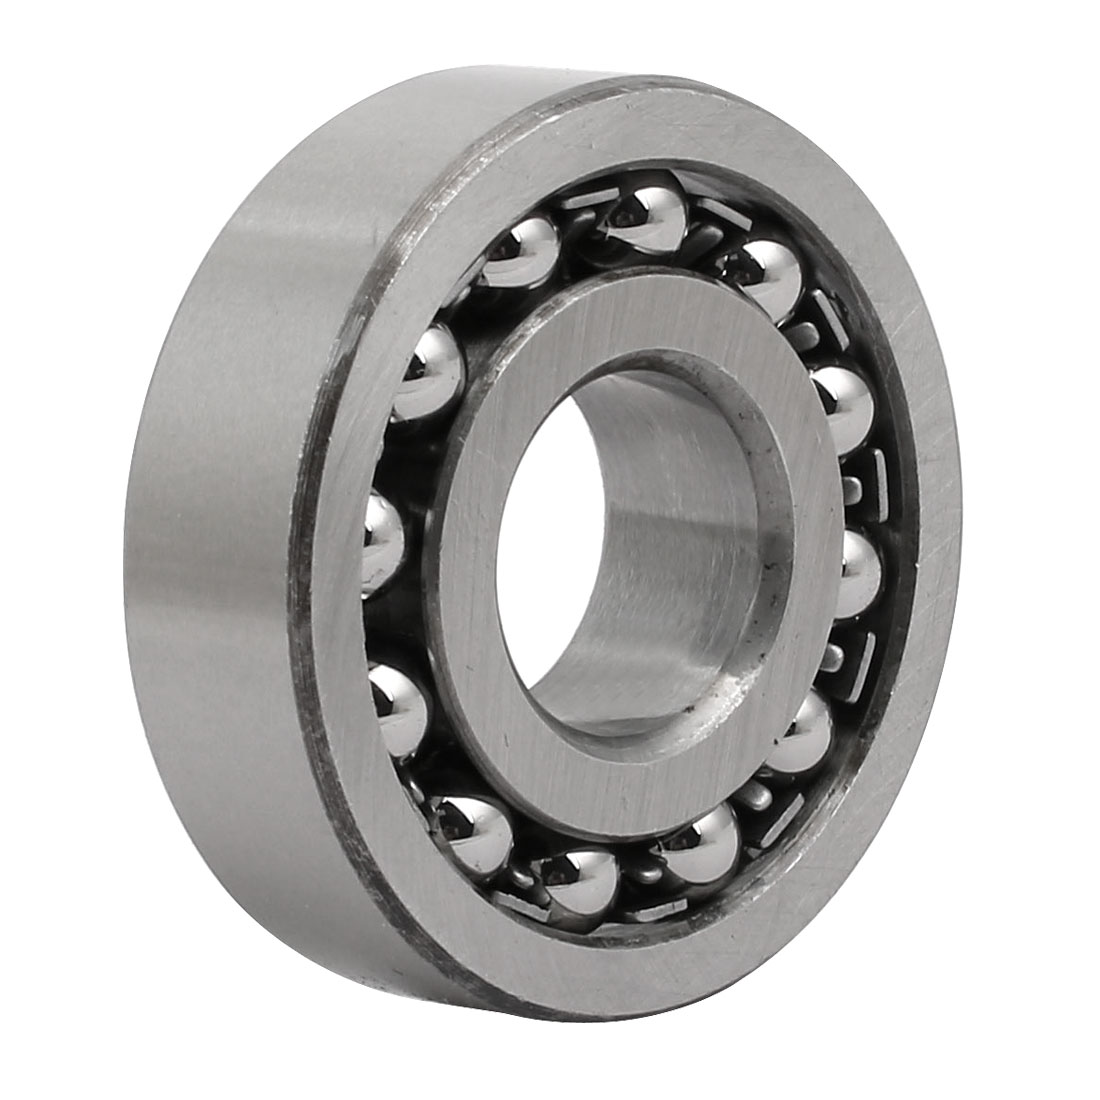 20mm Inner Dia 52mm OD 15mm Thickness Self Aligning Ball Bearing 1304